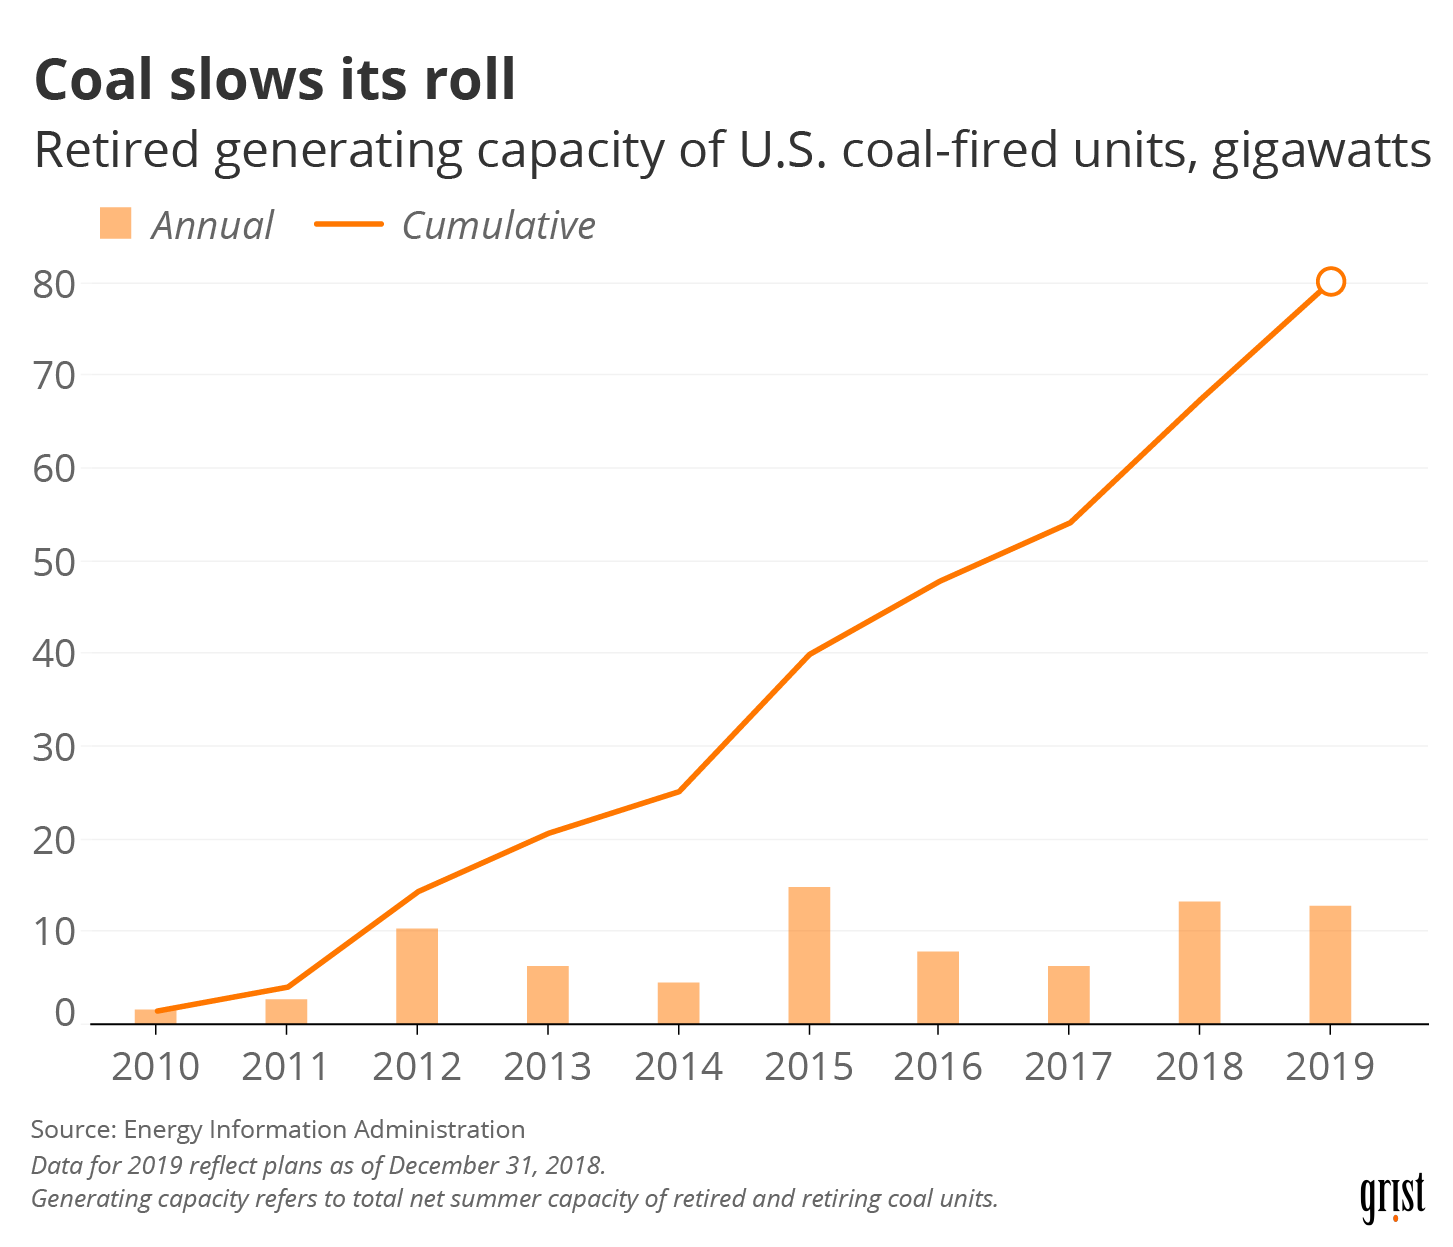 A line chart showing the retired generating capacity of U.S. coal-fired units, gigawatts